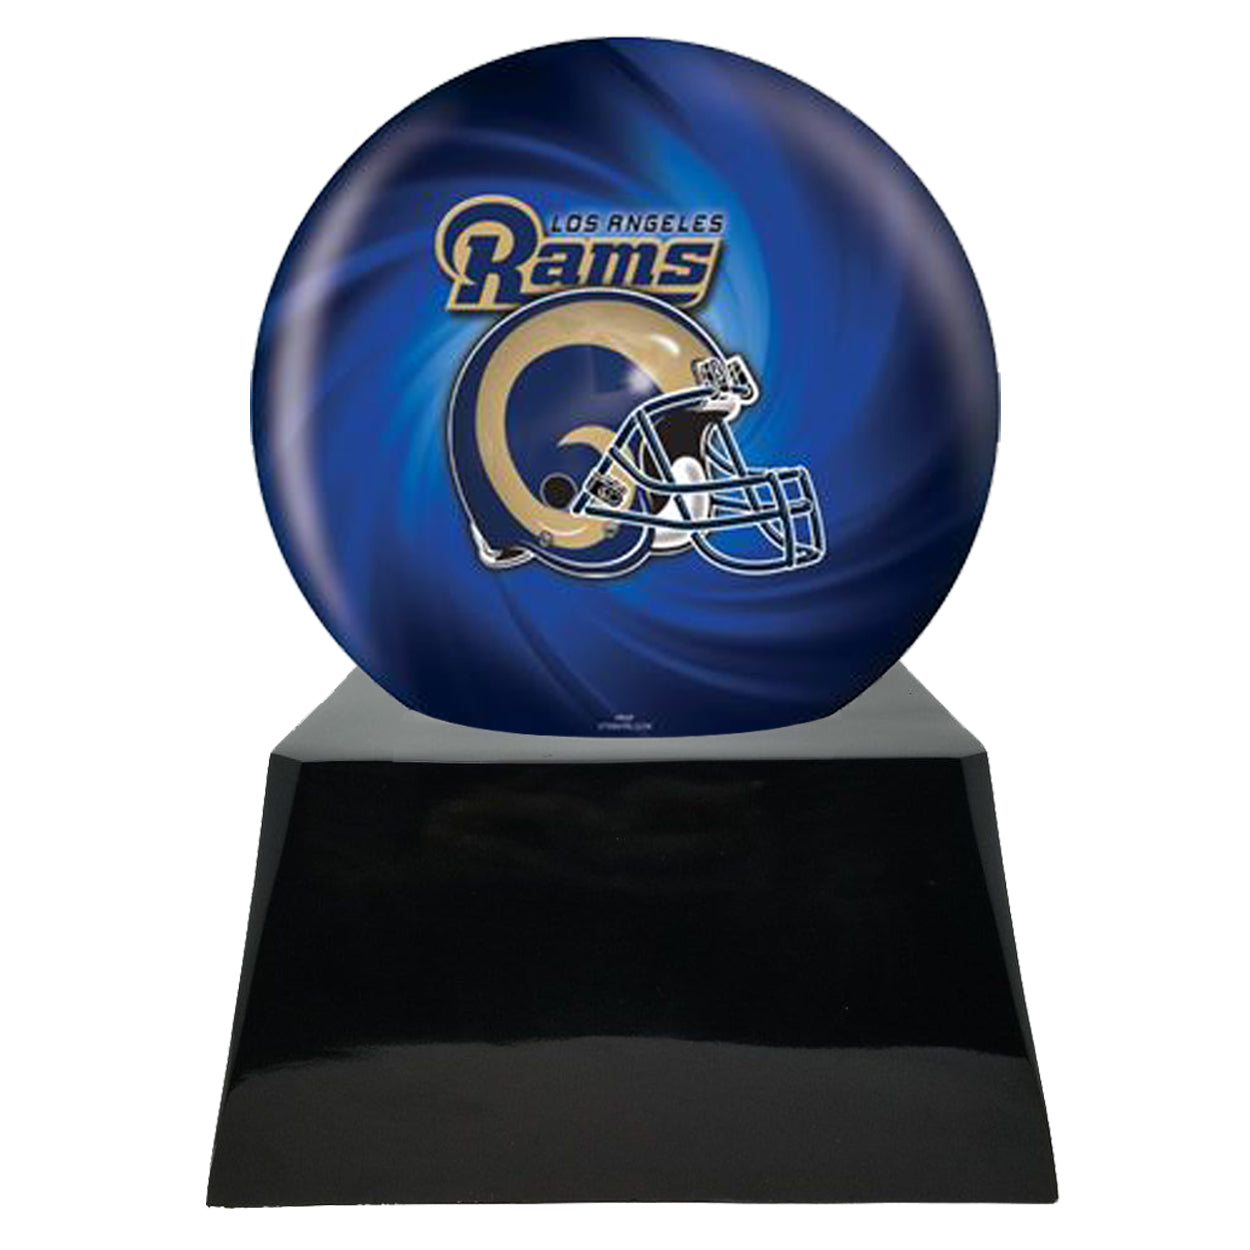 Football Cremation Urns For Human Ashes - Football Cremation Urn and Los Angeles Rams Ball Decor with Custom Metal Plaque data-image-id=